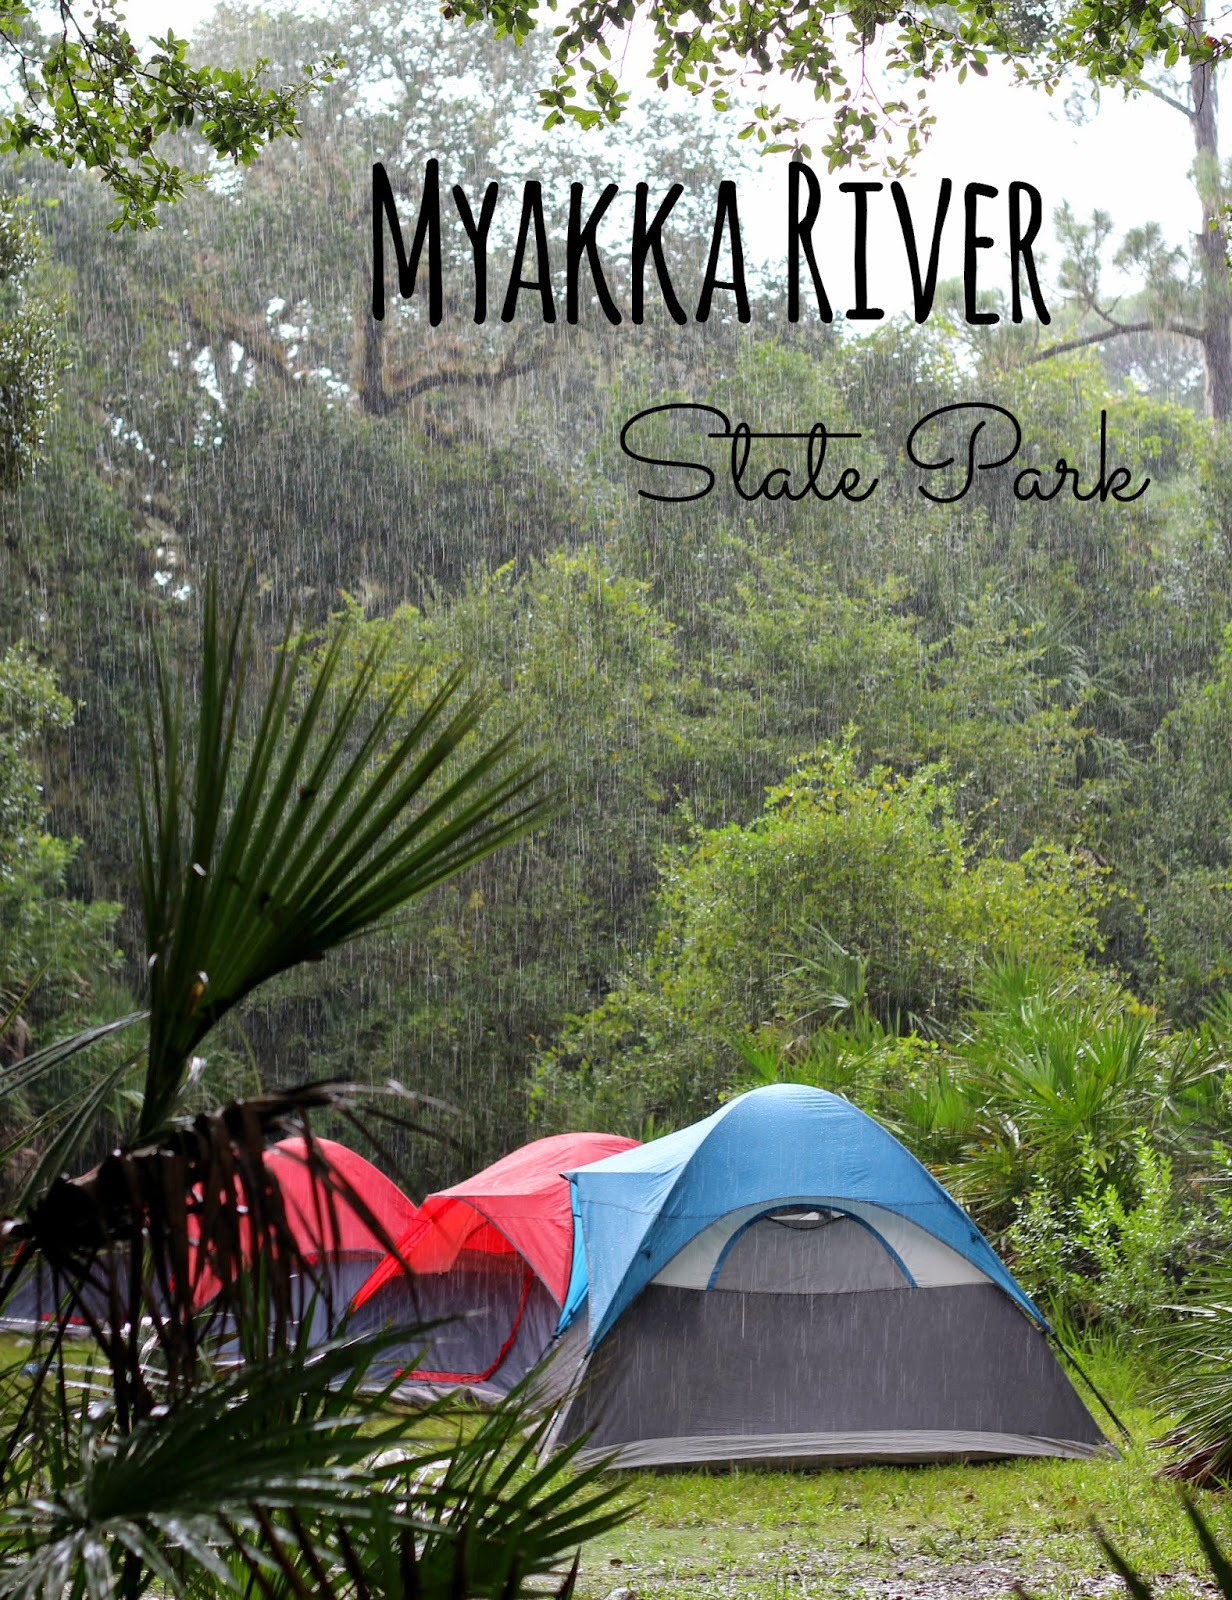 Family camping and exploring at Myakka River State Park, Florida